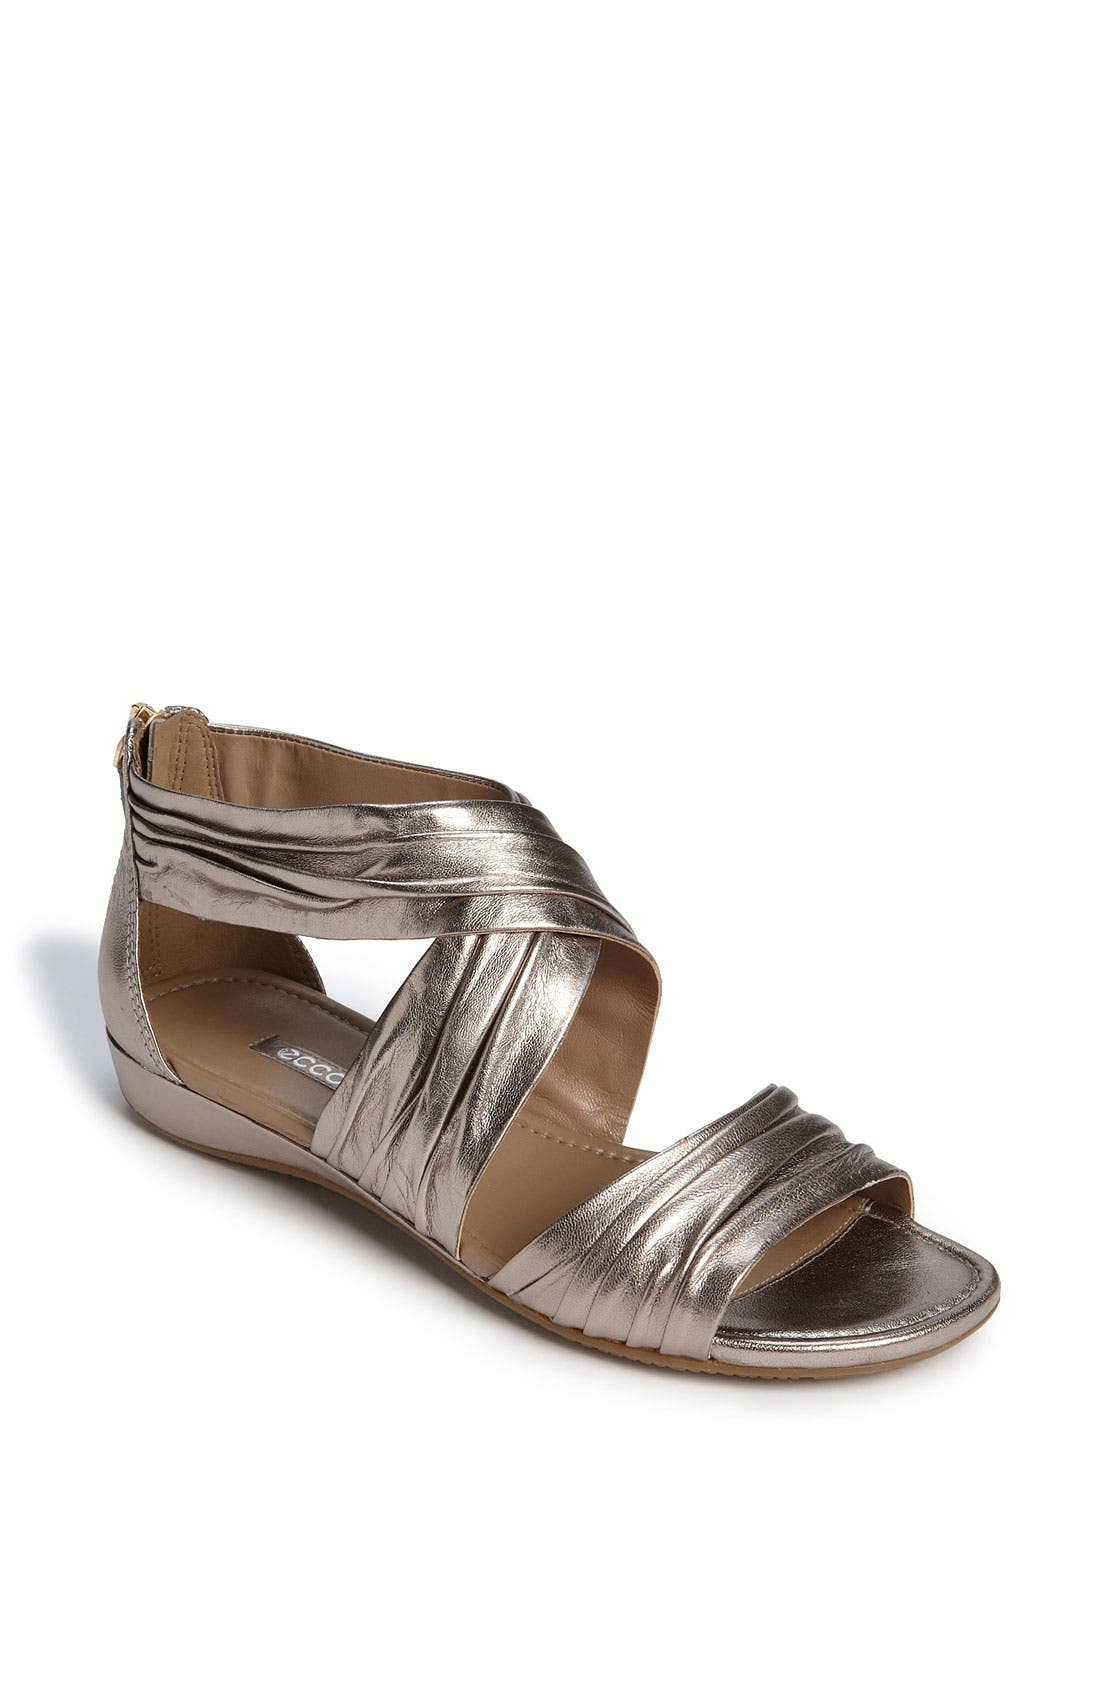 Alternate Image 1 Selected - ECCO 'Bouillon' Band Sandal